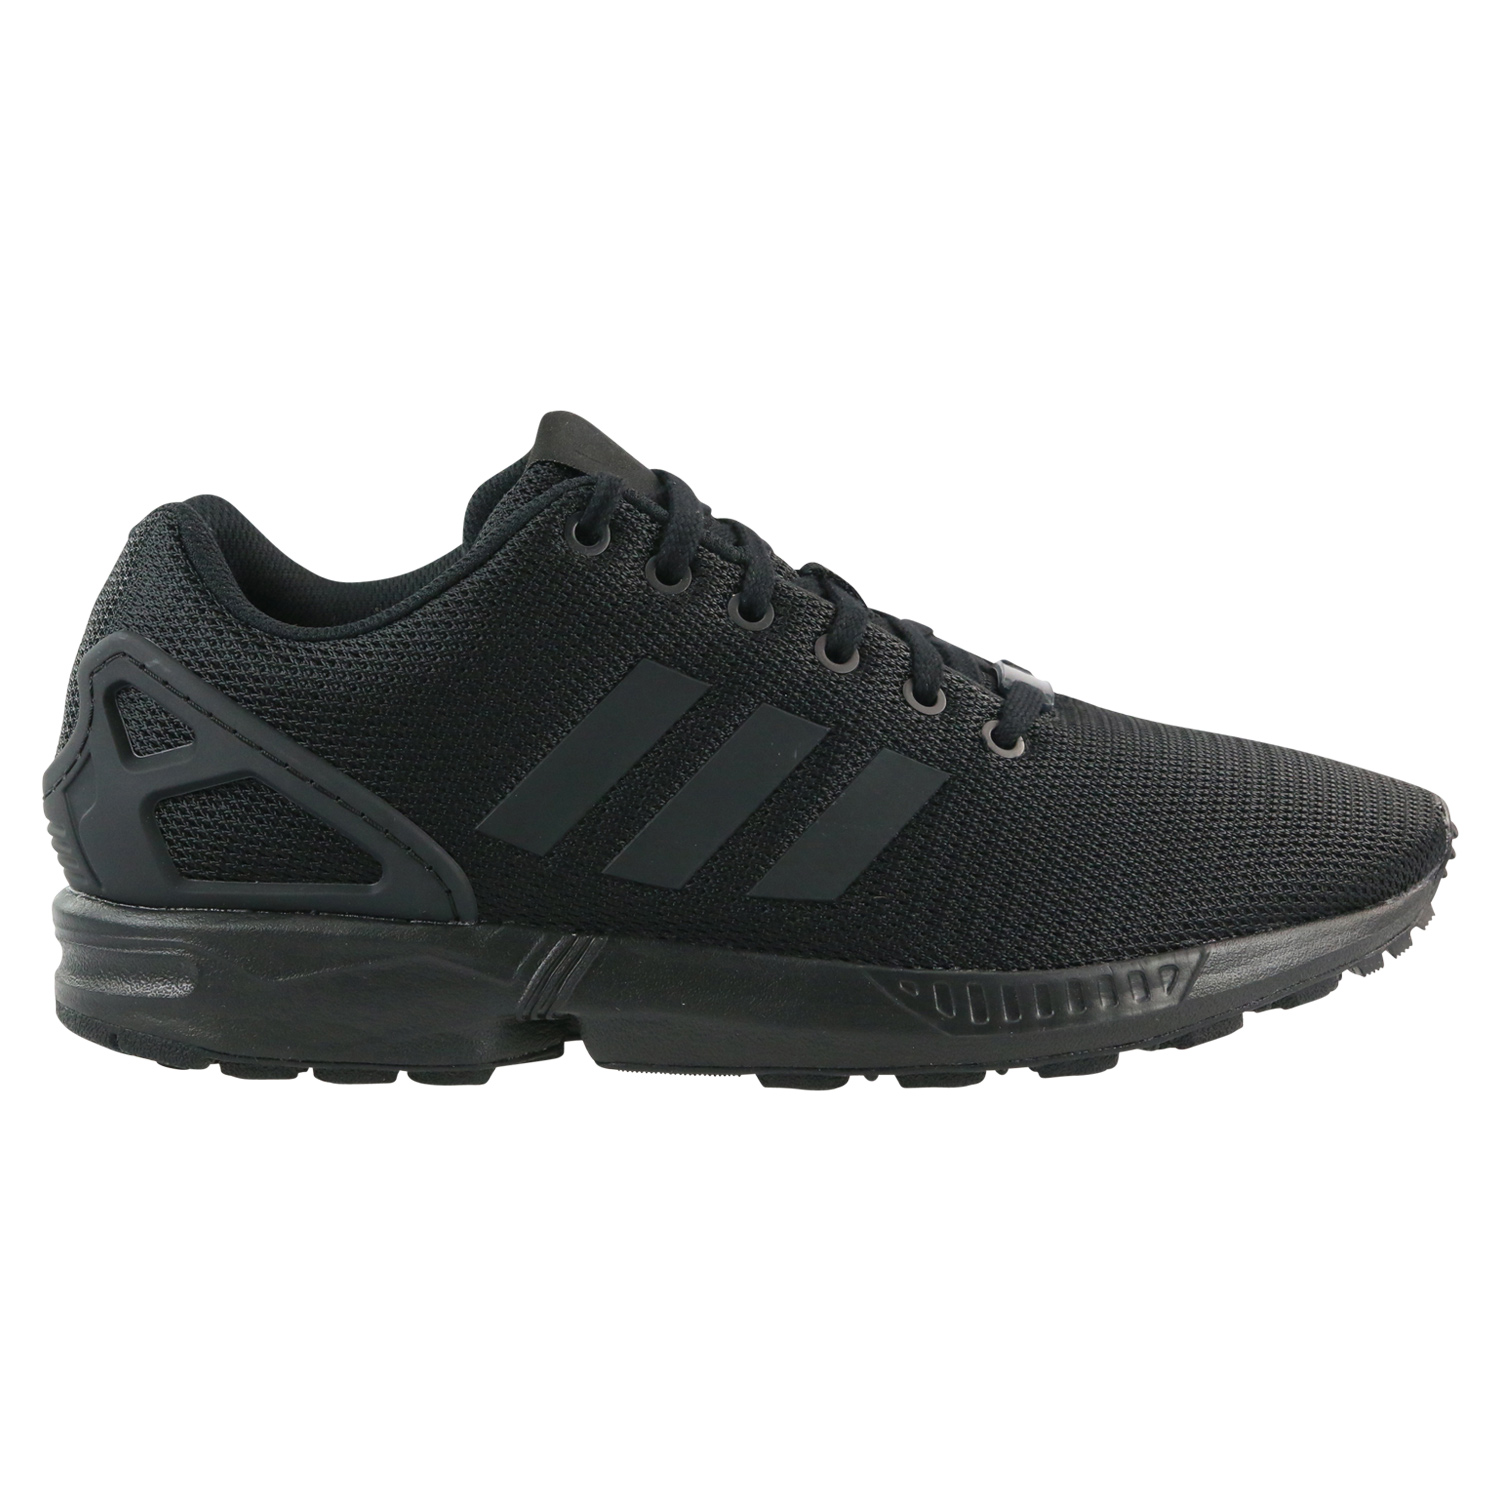 adidas originals zx flux schuhe sneaker damen herren ebay. Black Bedroom Furniture Sets. Home Design Ideas